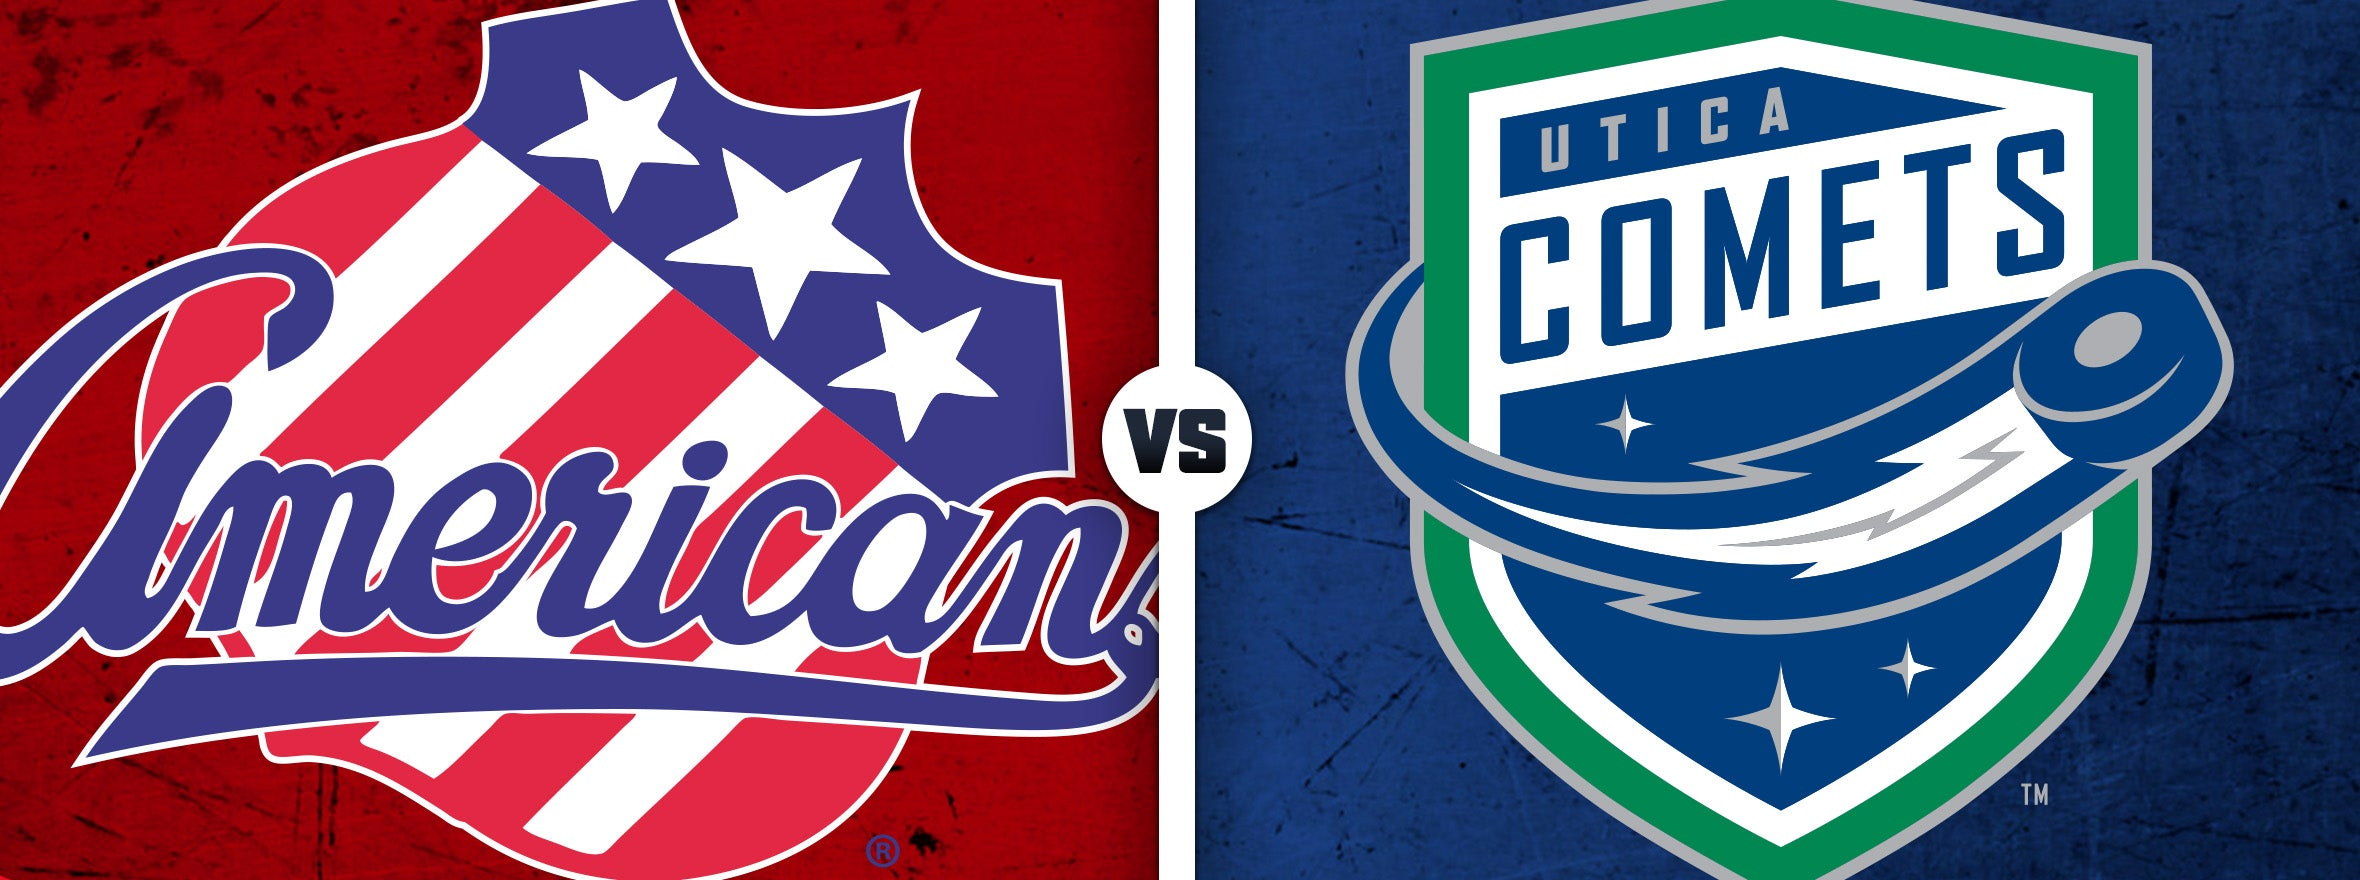 COMETS SET FOR FINAL HOME GAME OF SEASON